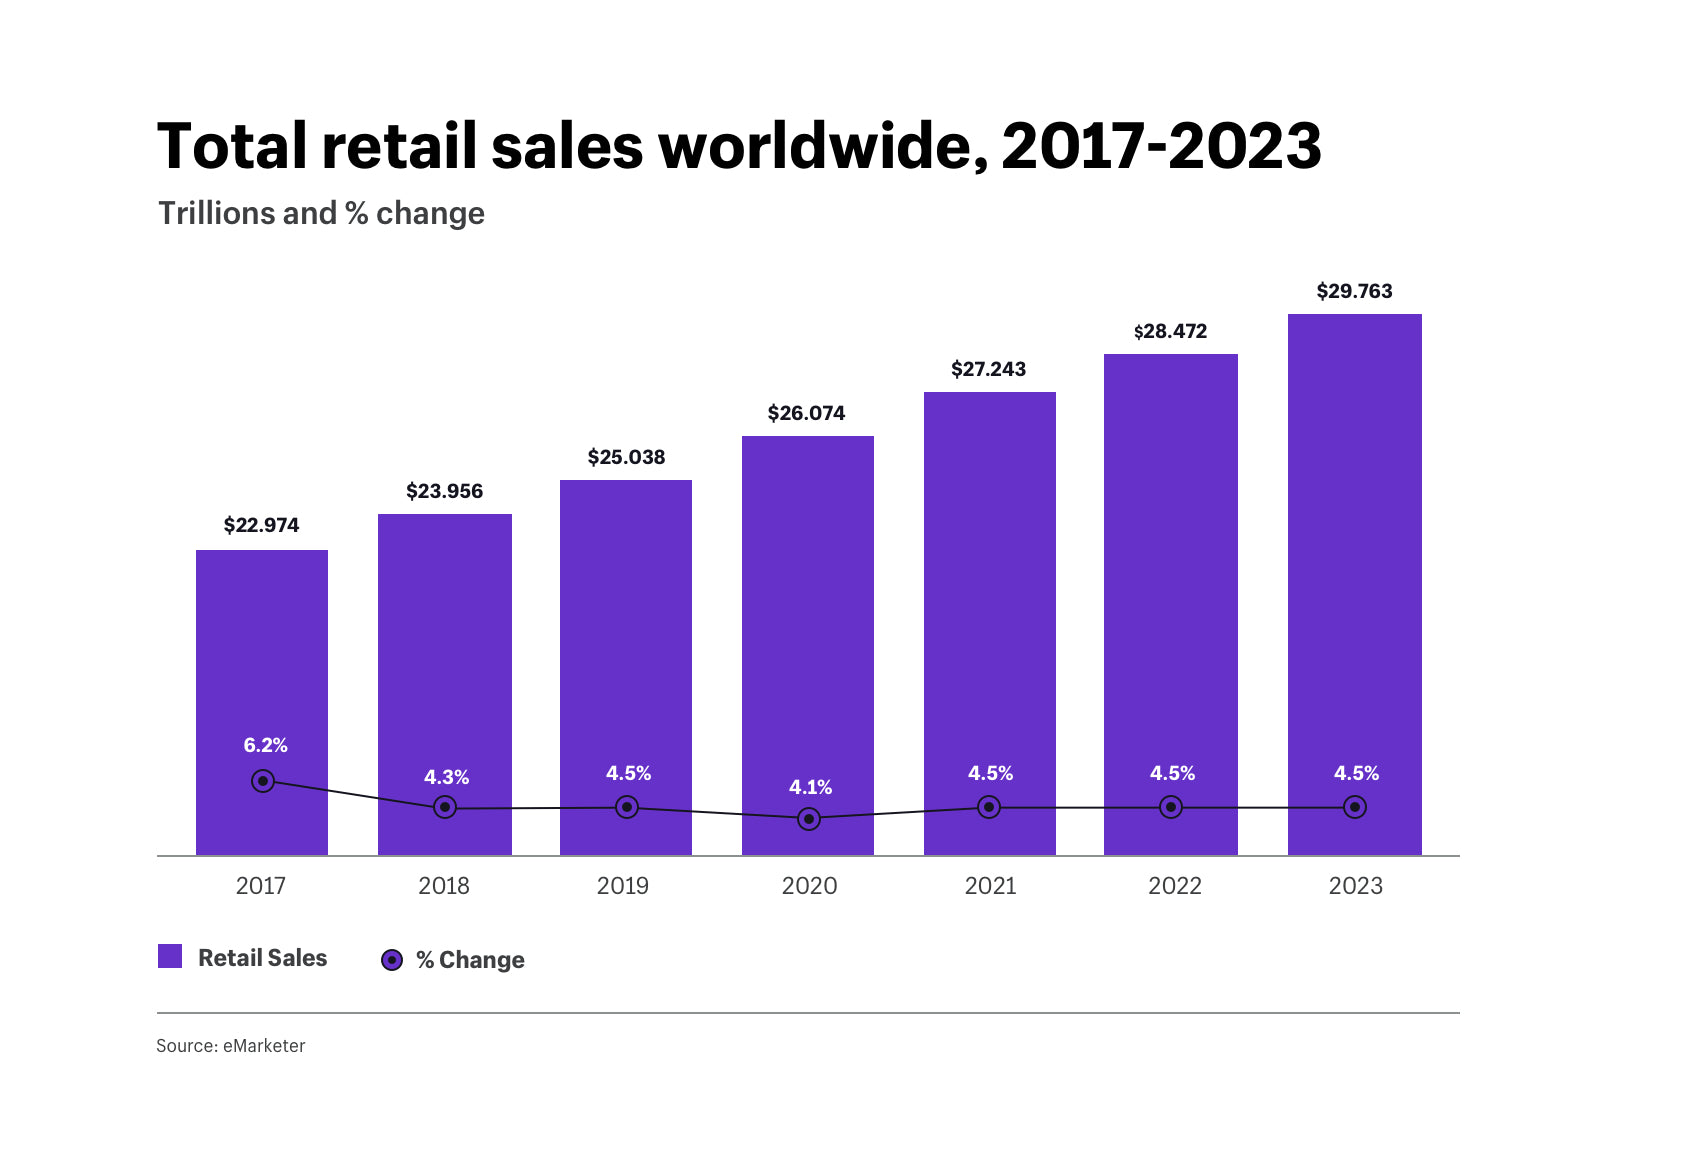 Total retail sales worldwide, 2017-2023